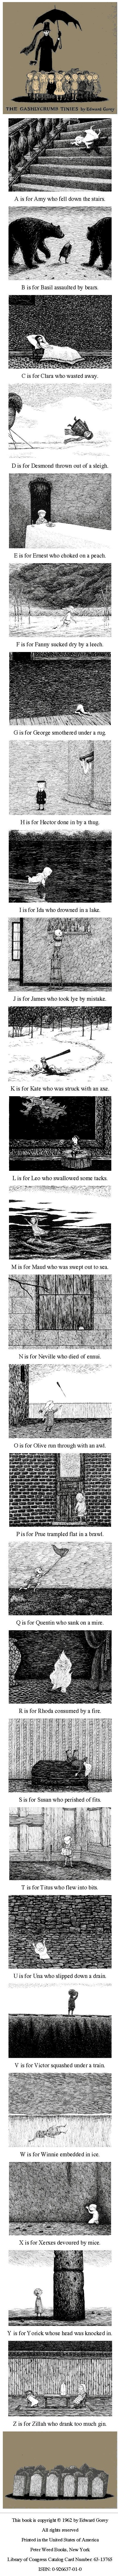 The Gashlycrumb Tinies: or, After the Outing is an abecedarian book written by Edward Gorey that was first published in 1963.